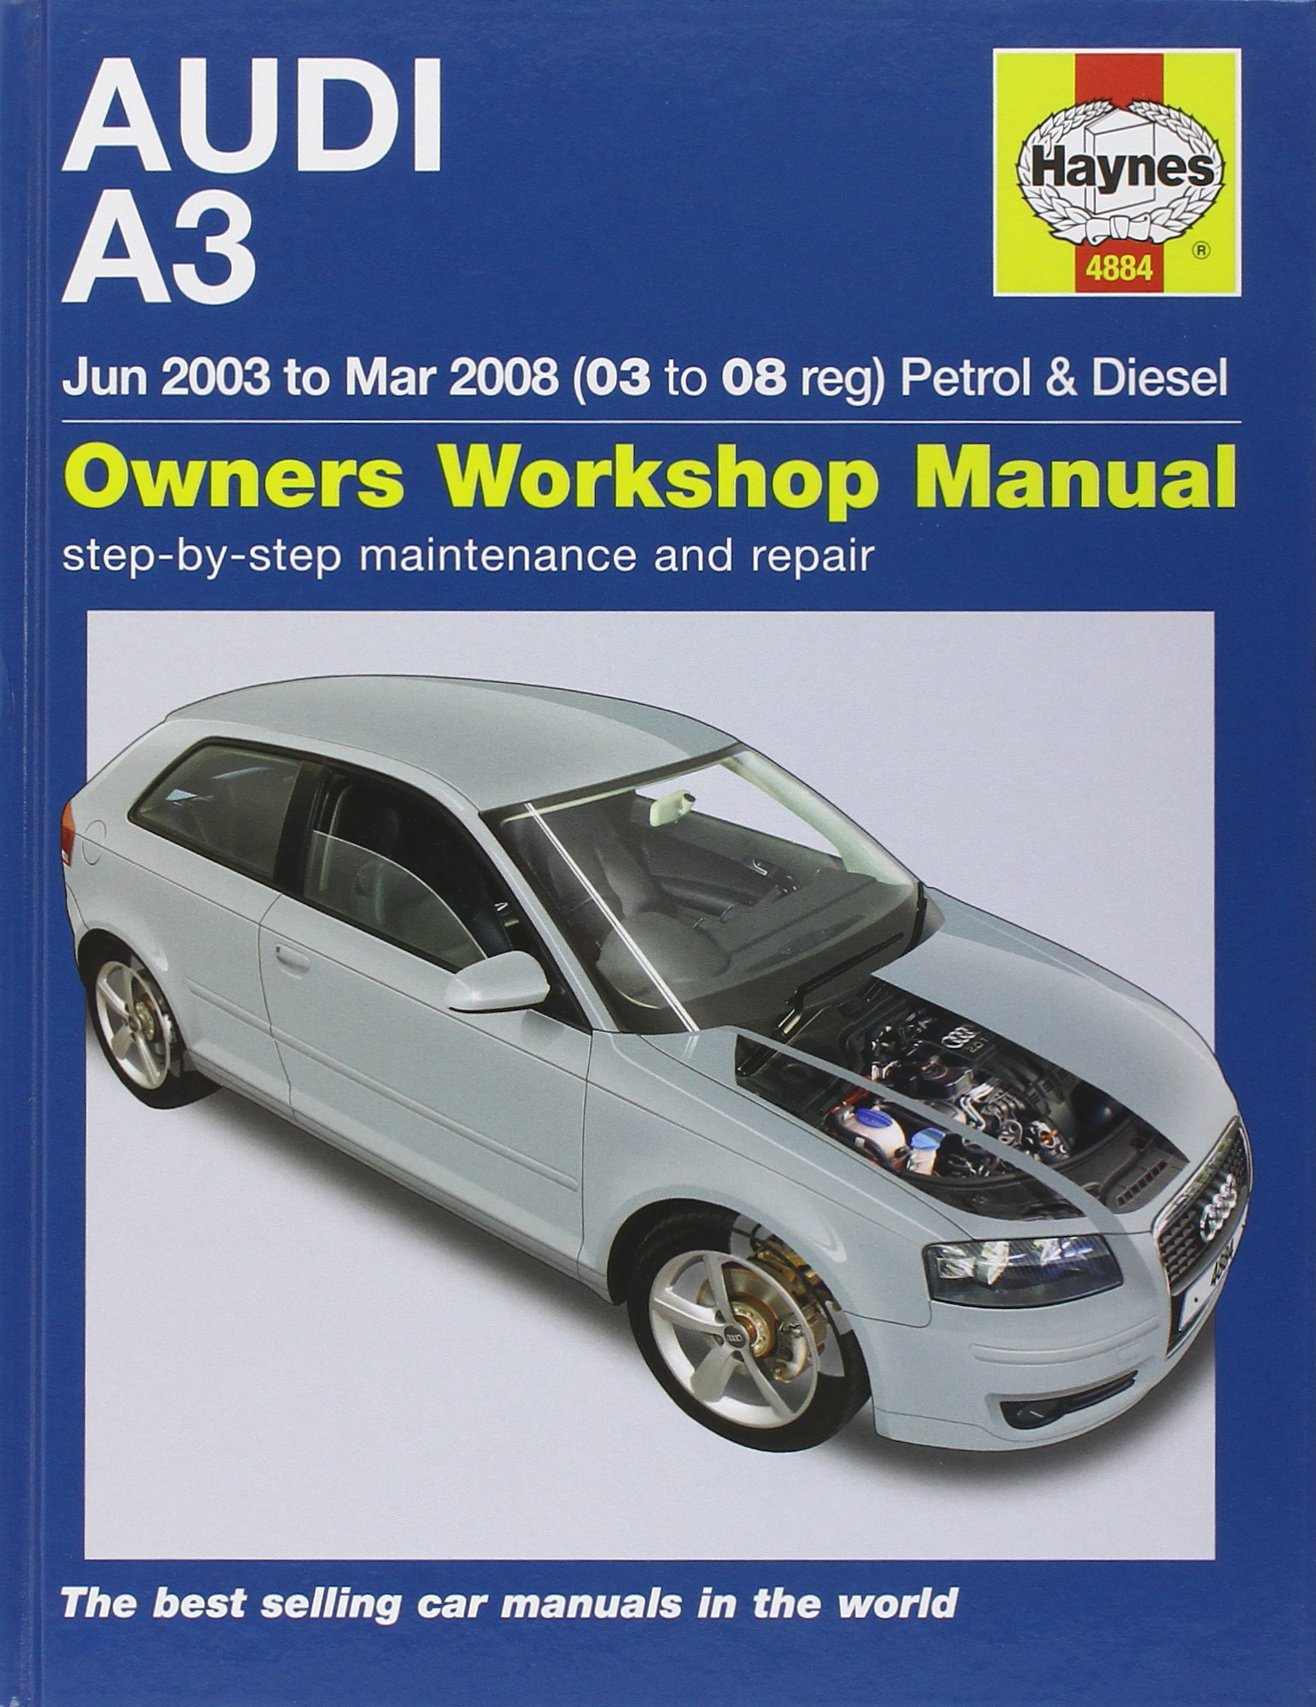 Audi A3 Petrol and Diesel Service and Repair Manual: 03 to 08 (Haynes  Service and Repair Manuals): Amazon.co.uk: Peter T. Gill: 9781844258840:  Books